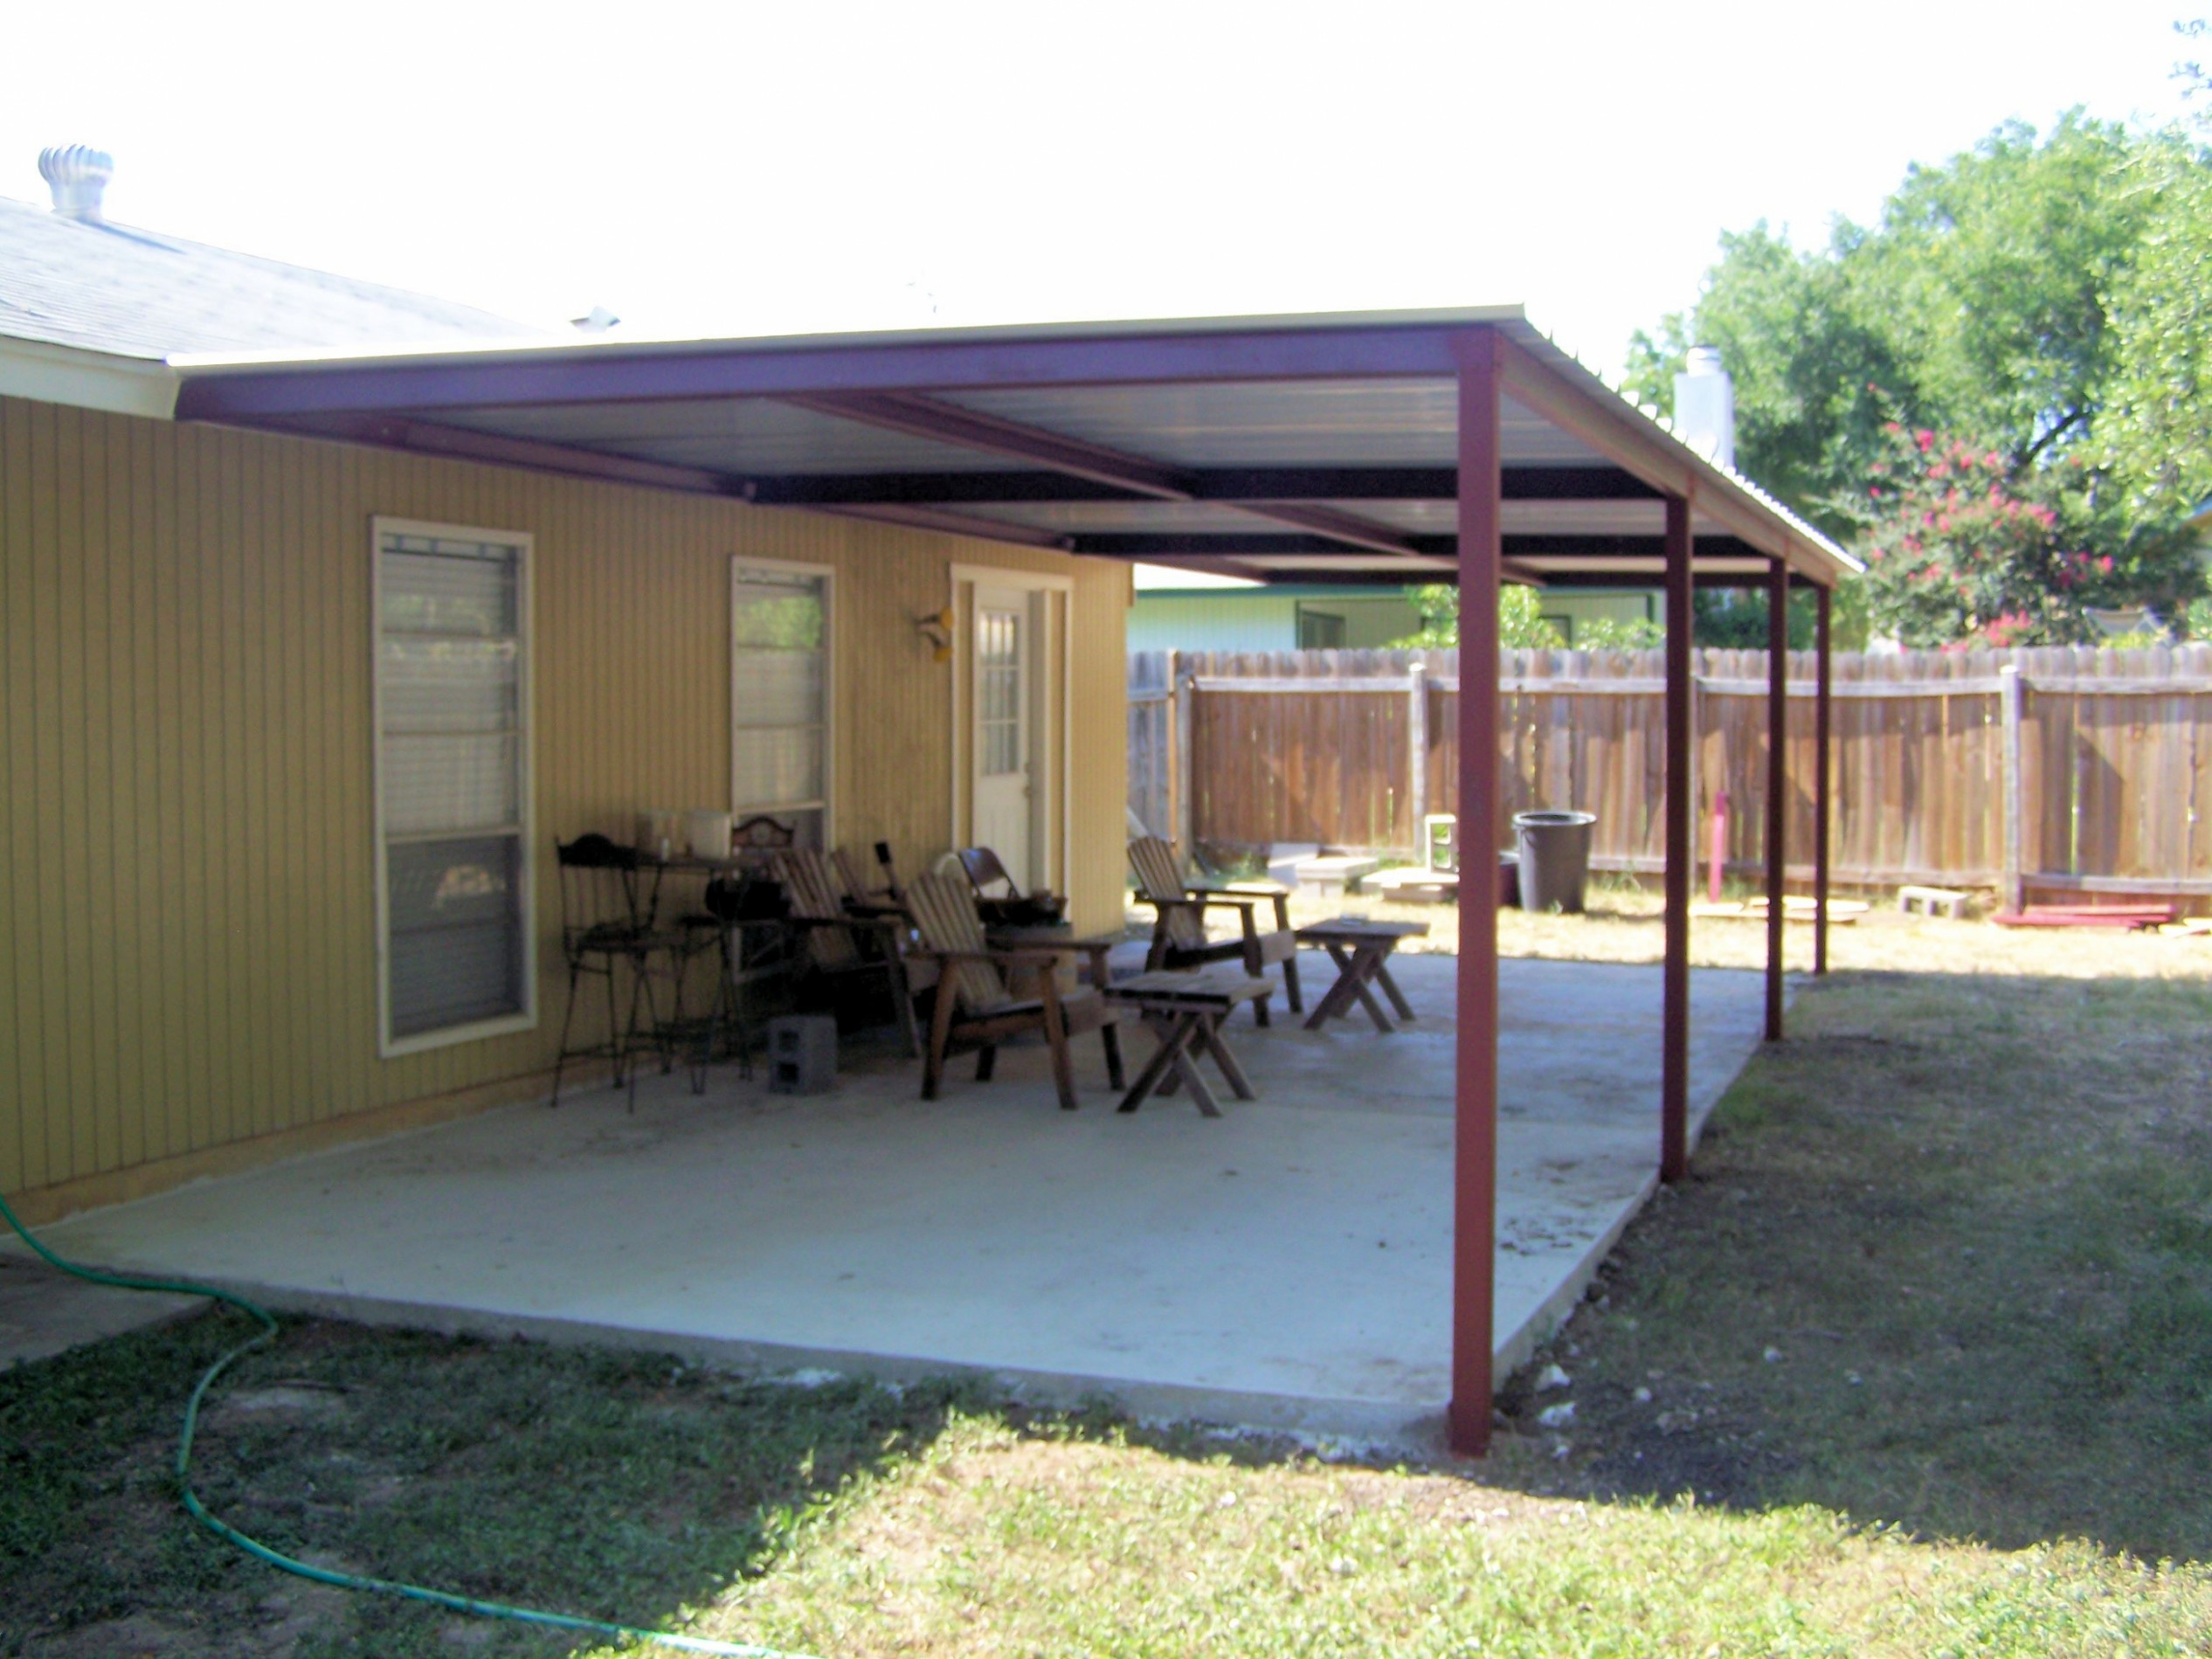 1517565424-retractable-all-year-round-roof-awnings-soapp-culture-carport-kits-for-sale.jpg